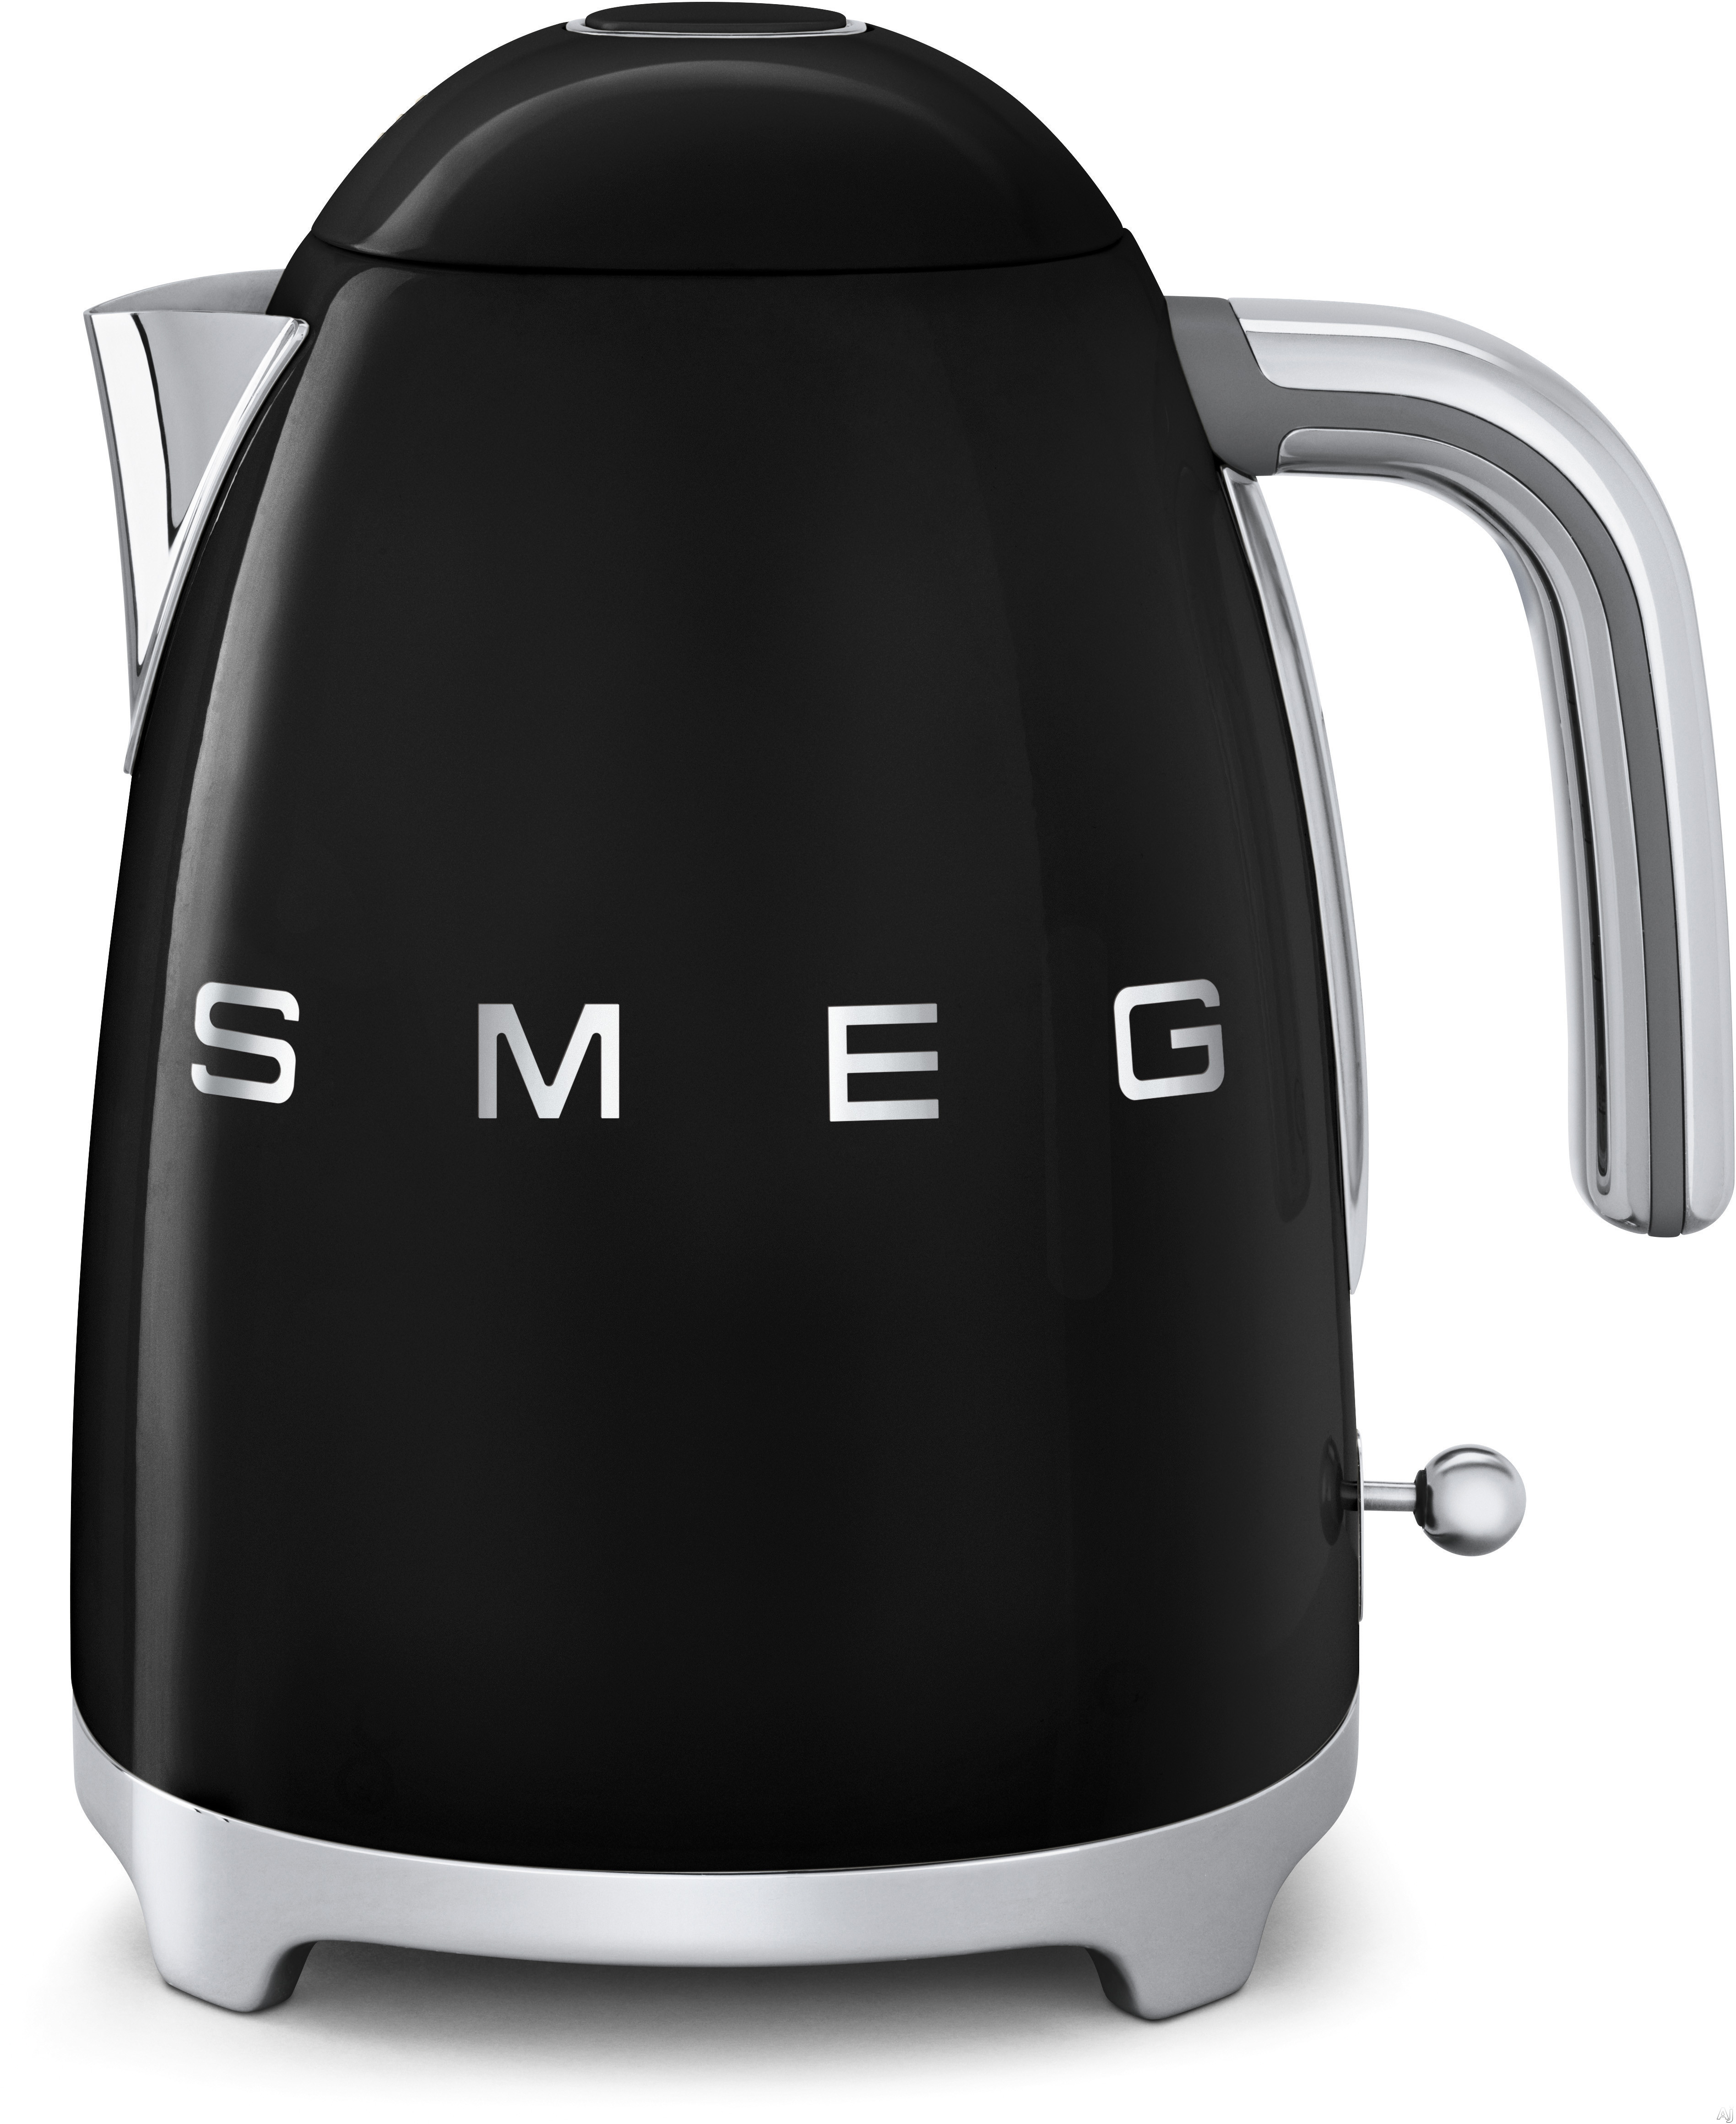 Smeg 50 s Retro Design KLF01BLUS Electric Kettle with 56 oz. Capacity Soft Opening Lid Auto Shut Off 360 Degree Swivel Base Anti Slip Feet and Built in Cord Wrap Black